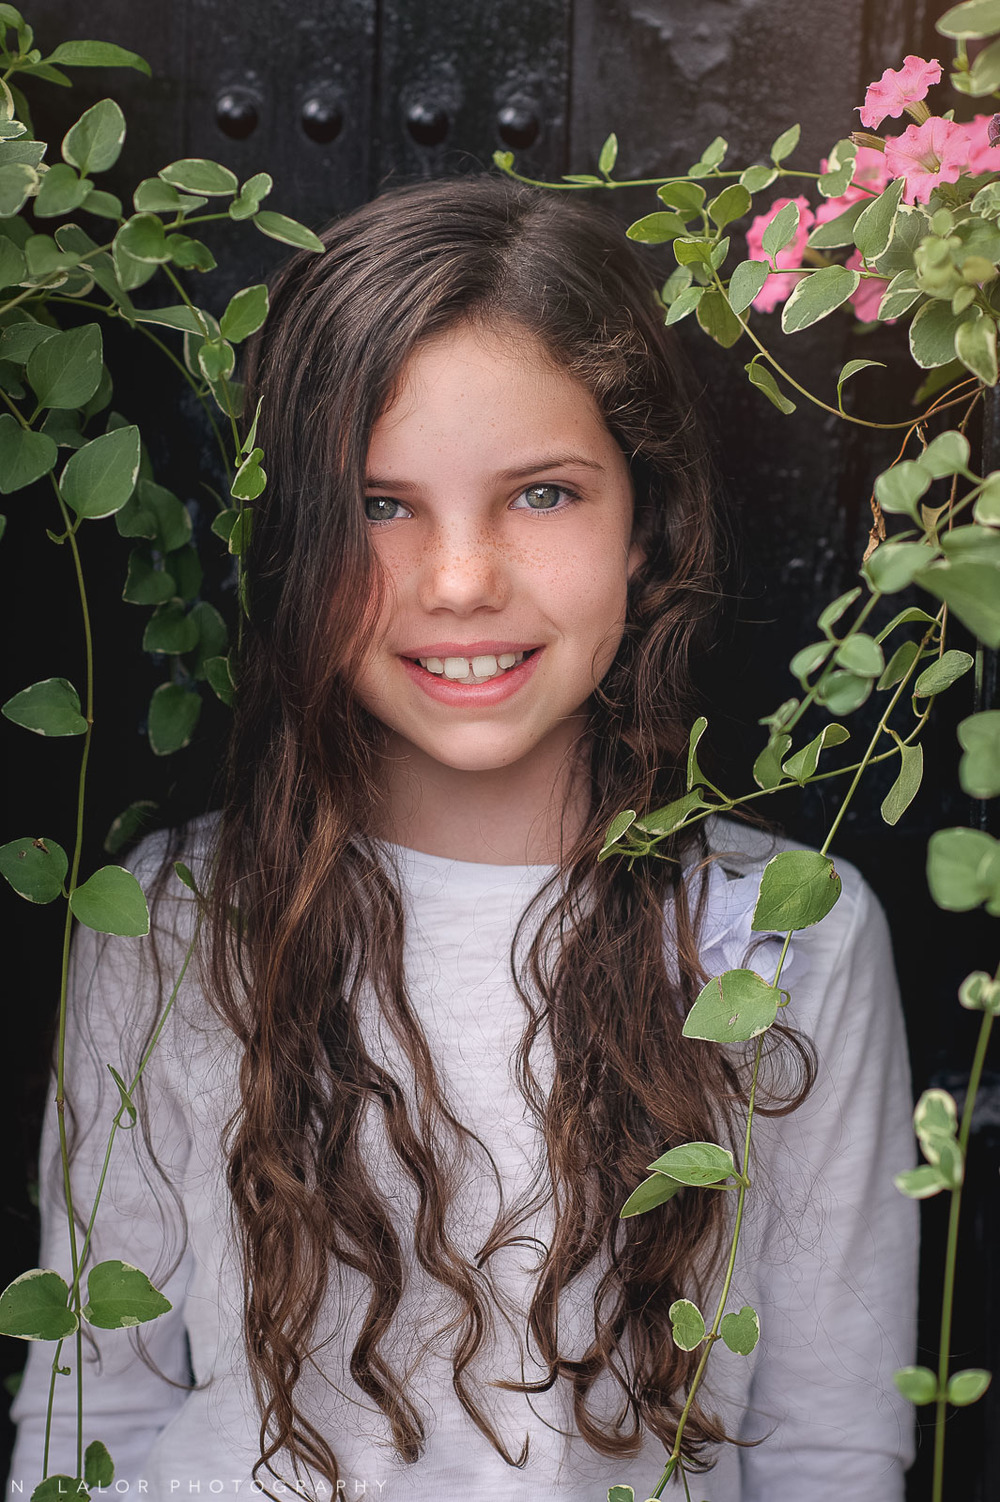 nlalor-photography-090314-fun-styled-tween-session-greenwich-avenue-connecticut-3.jpg